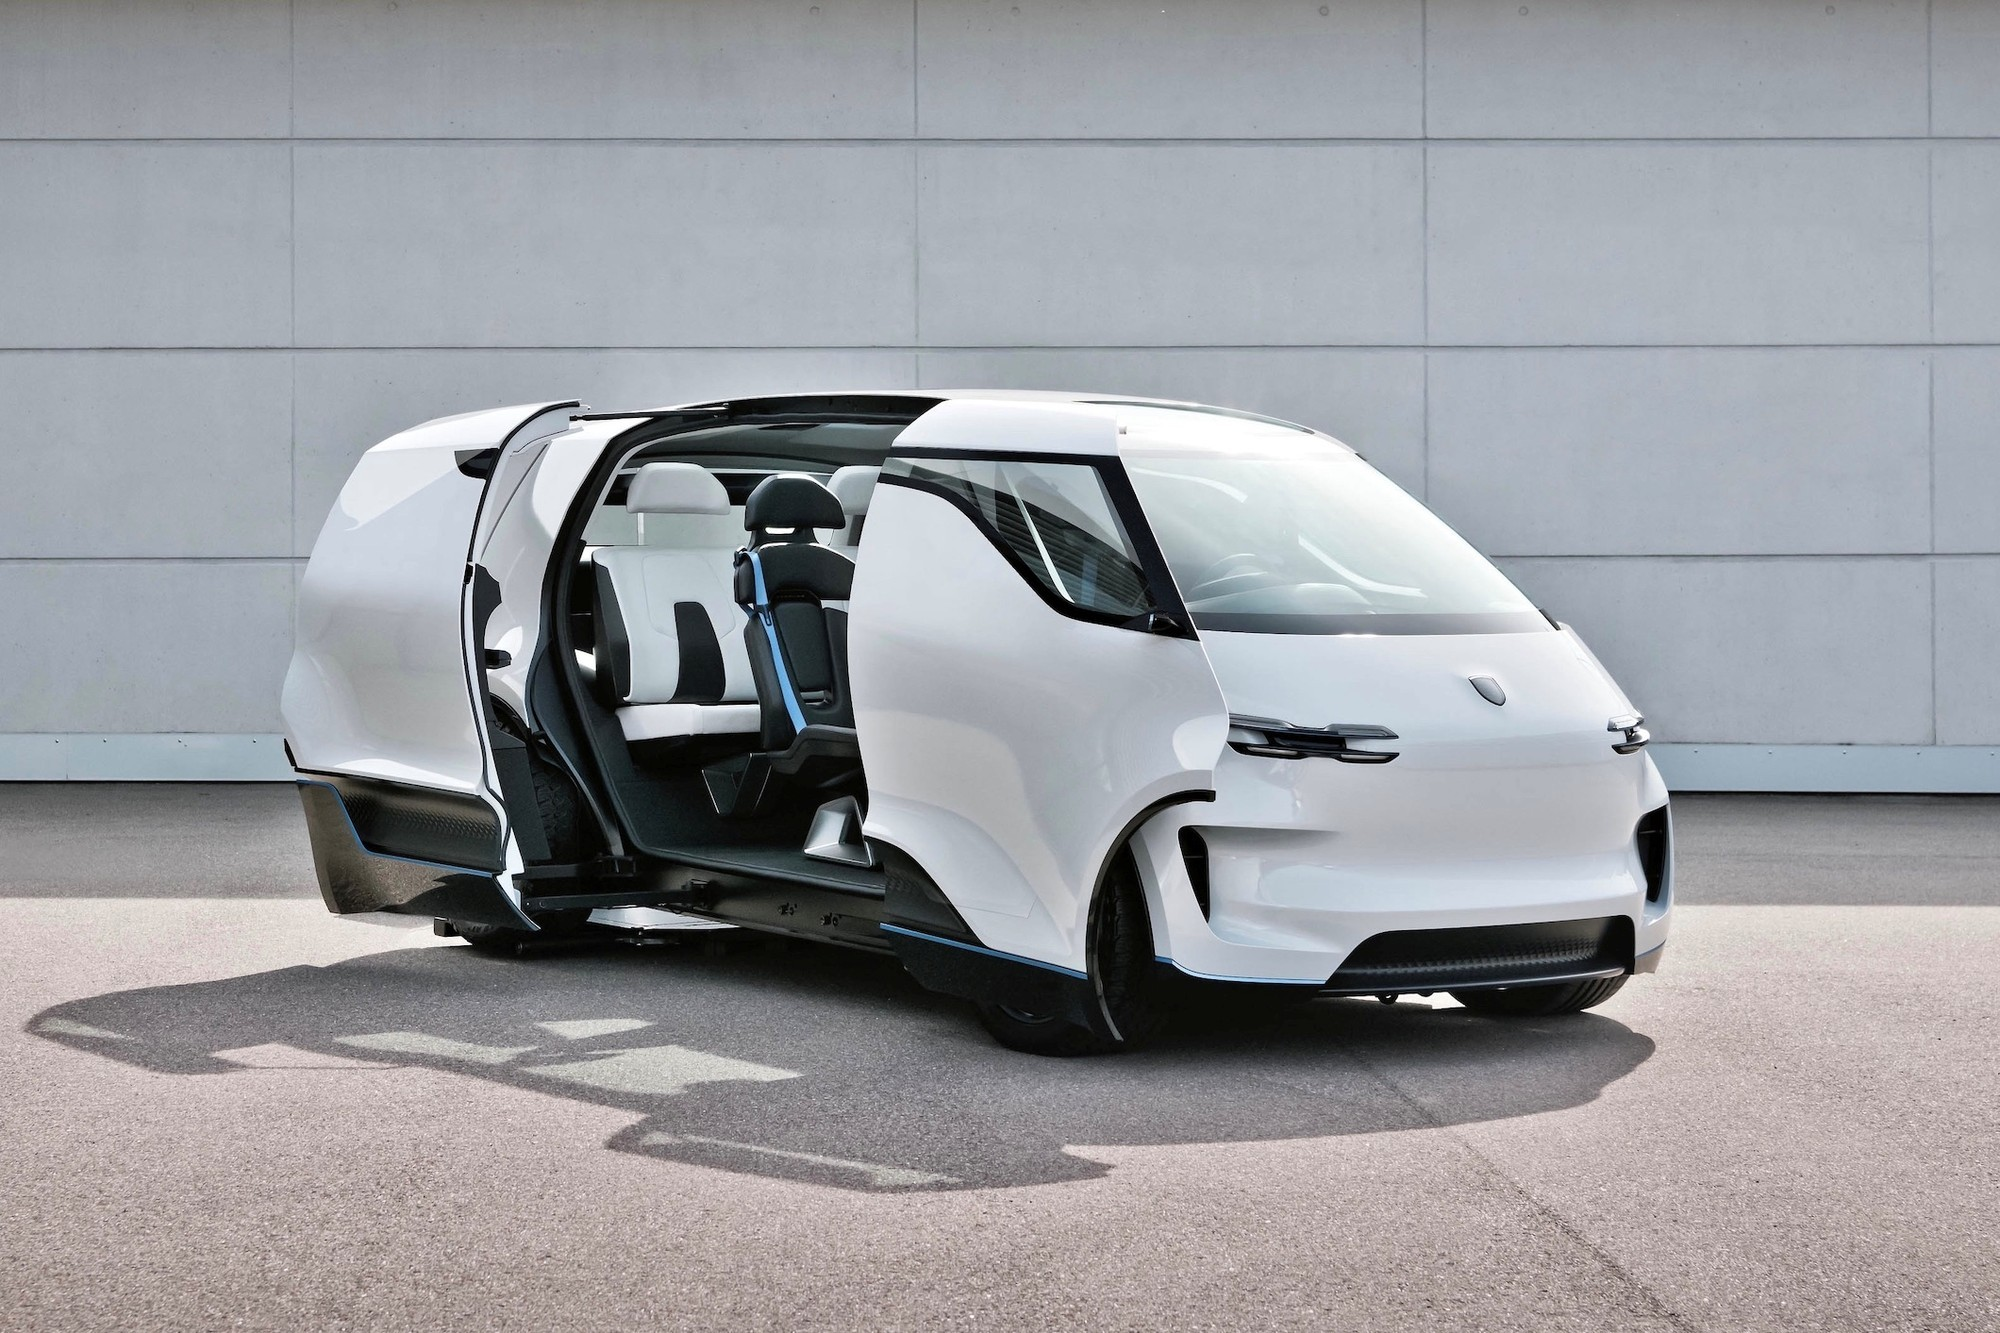 Back in 2020, Porsche unexpectedly unveiled a conceptual all-electric minivan named the Vision Renndienst. The company has now released some interior photos as well.